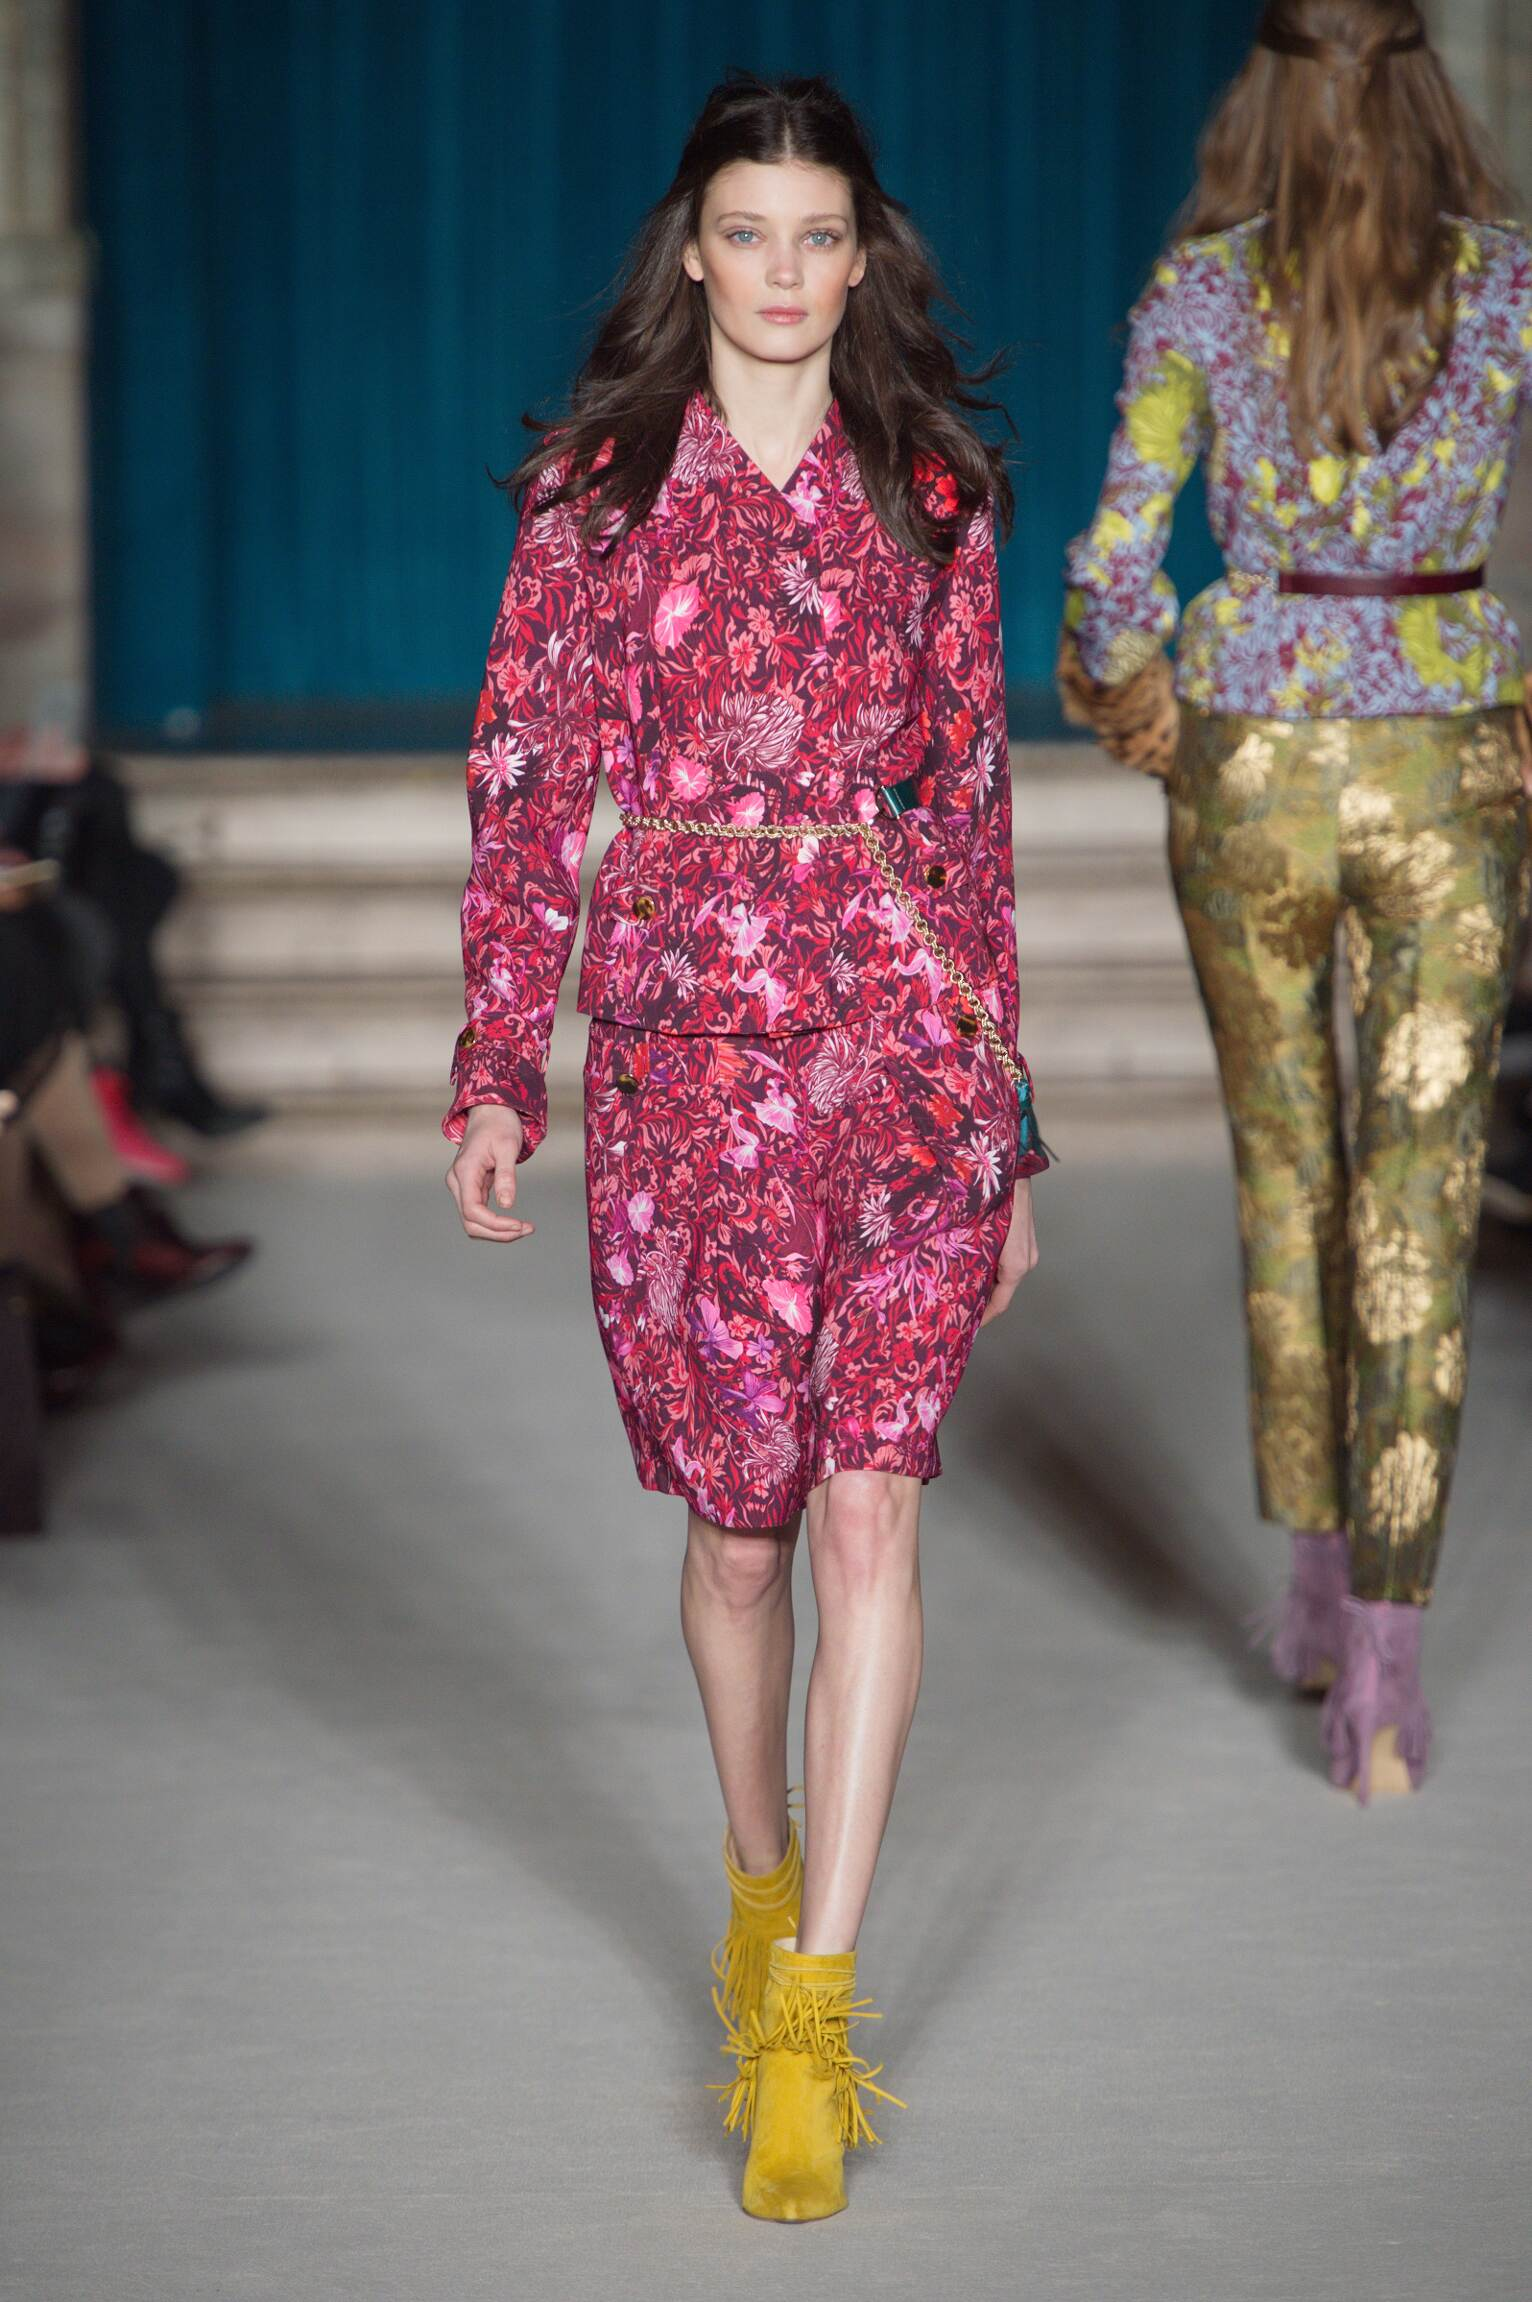 Matthew Williamson Fall Winter 2015 16 Women's Collection London Fashion Week Fashion Show